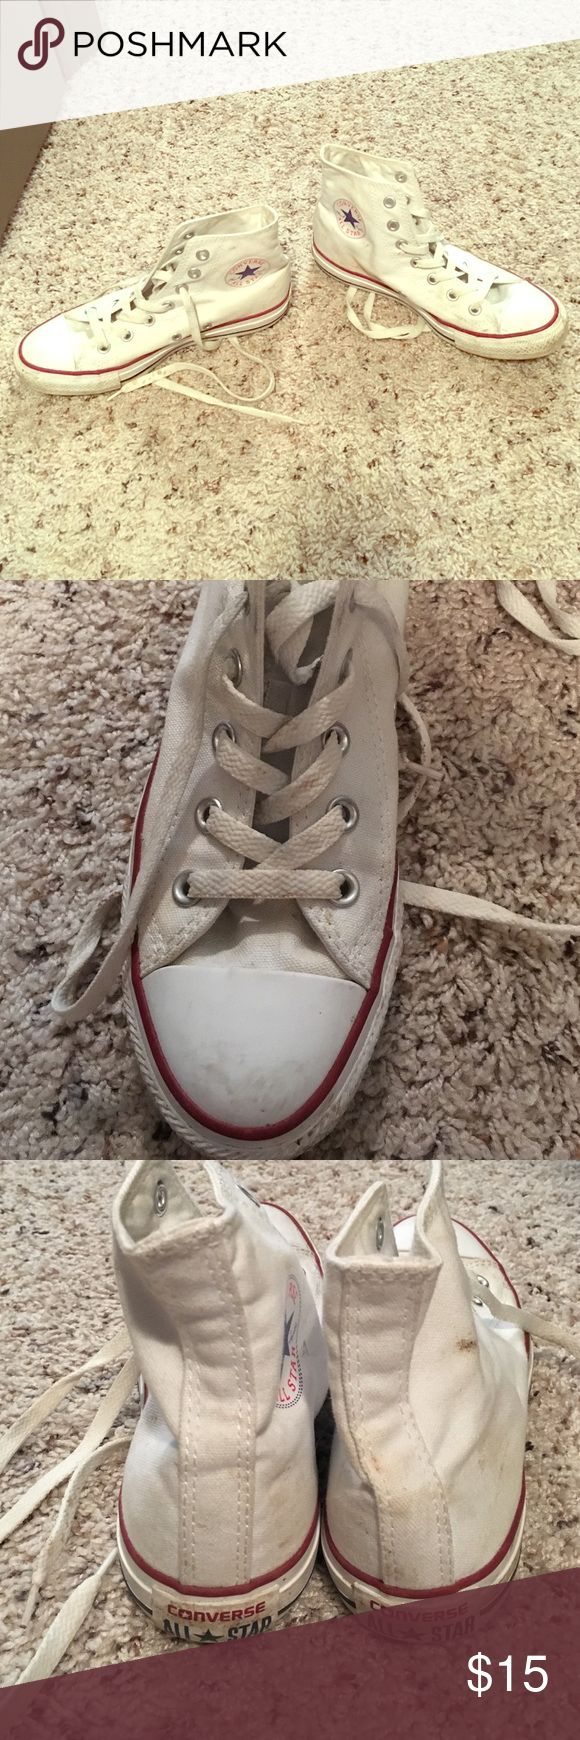 High top white converse High top white converse men's size 5, women's size 7! Some stains but would probably come out with bleach! Converse Shoes Athletic Shoes